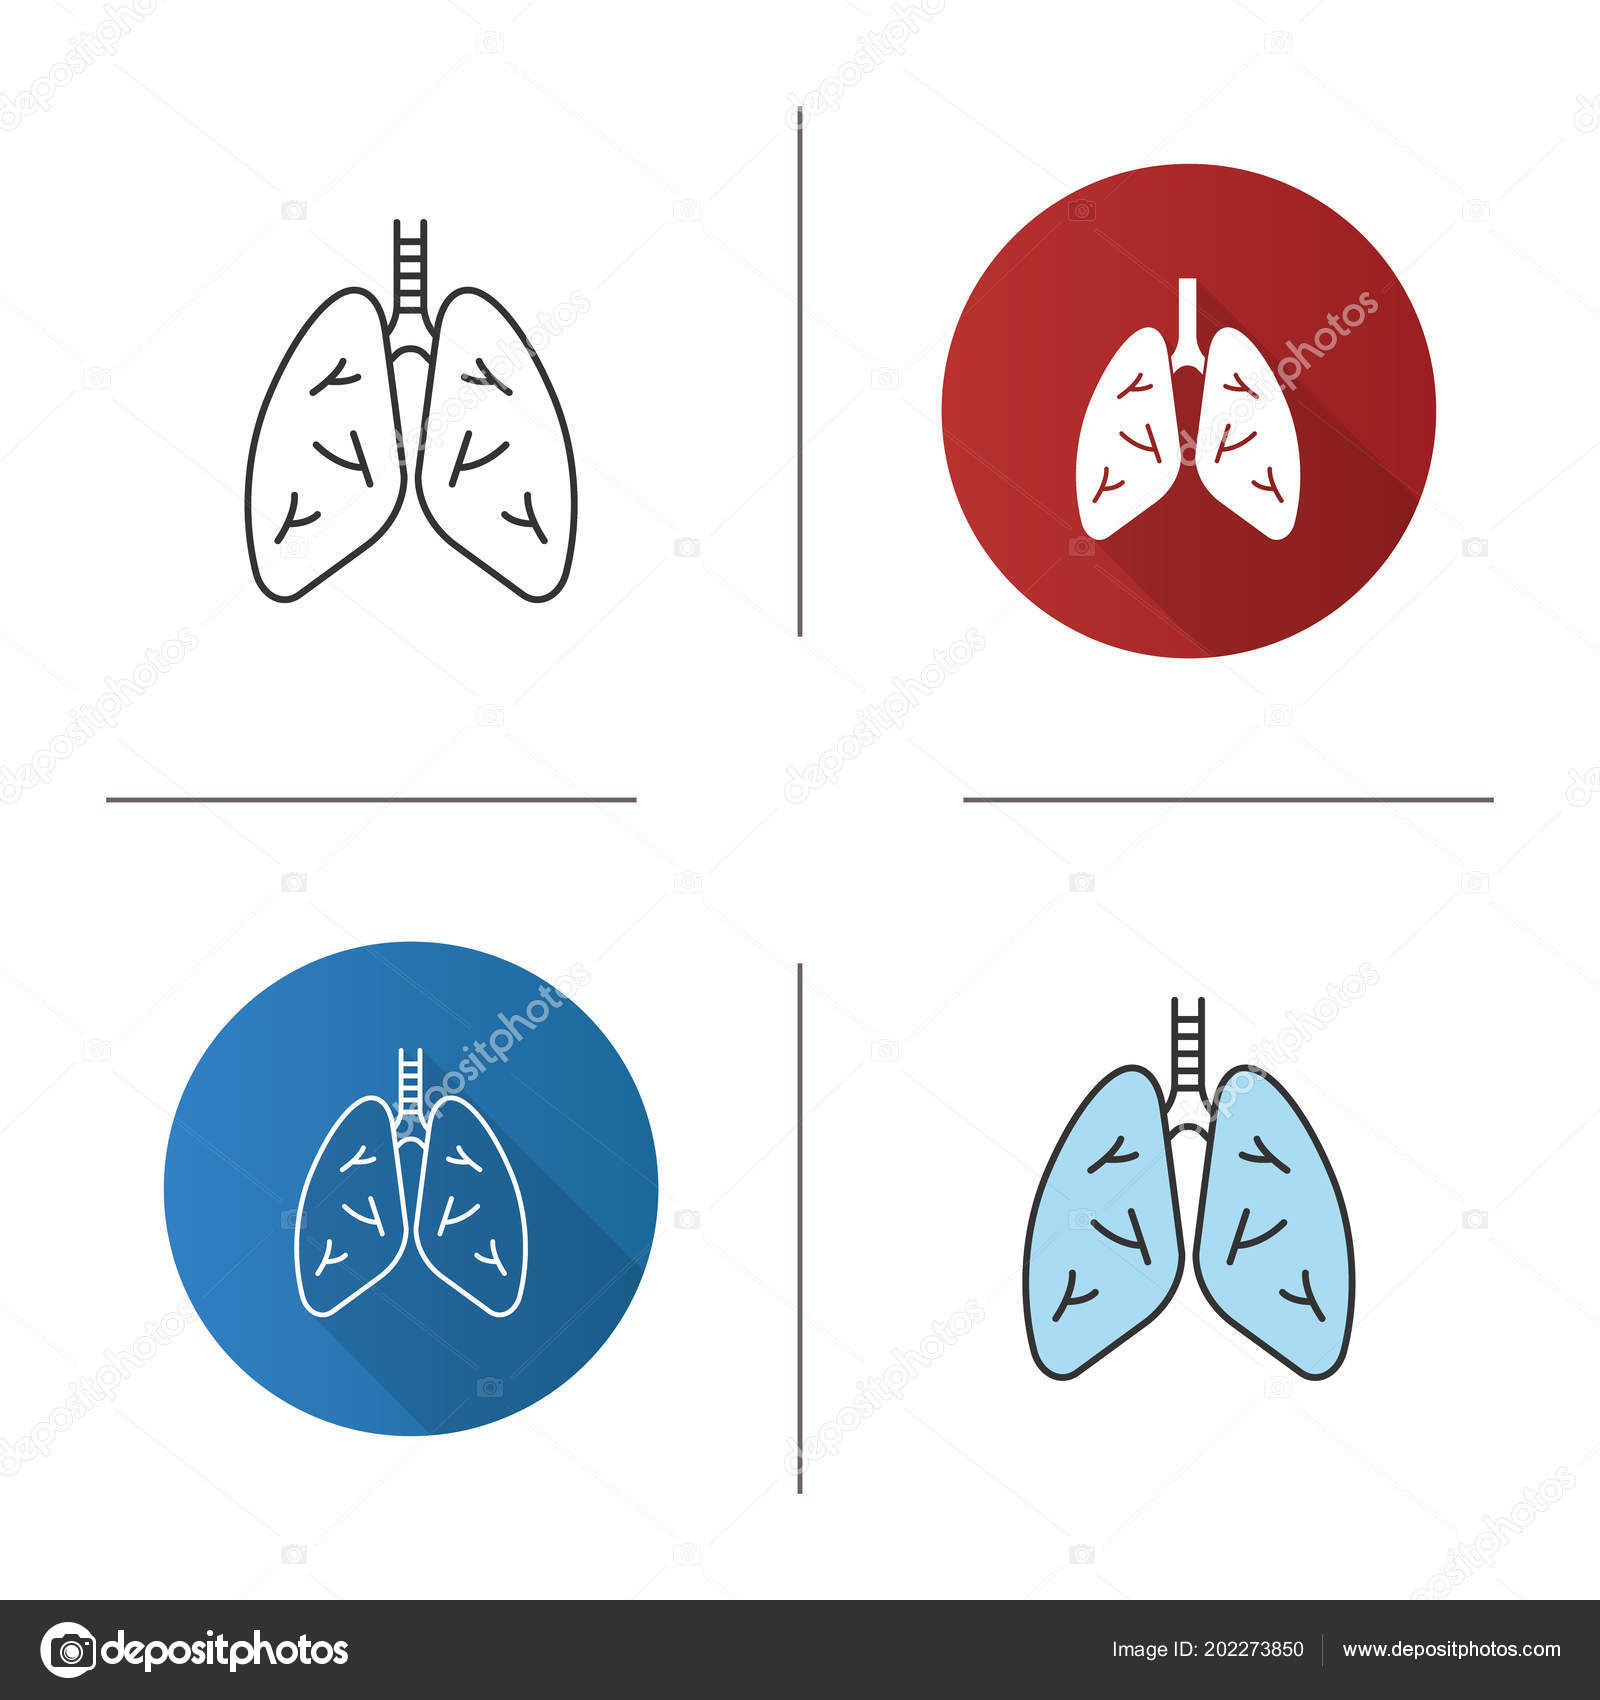 Human Lungs Icon Respiratory System Anatomy Flat Design Linear Color